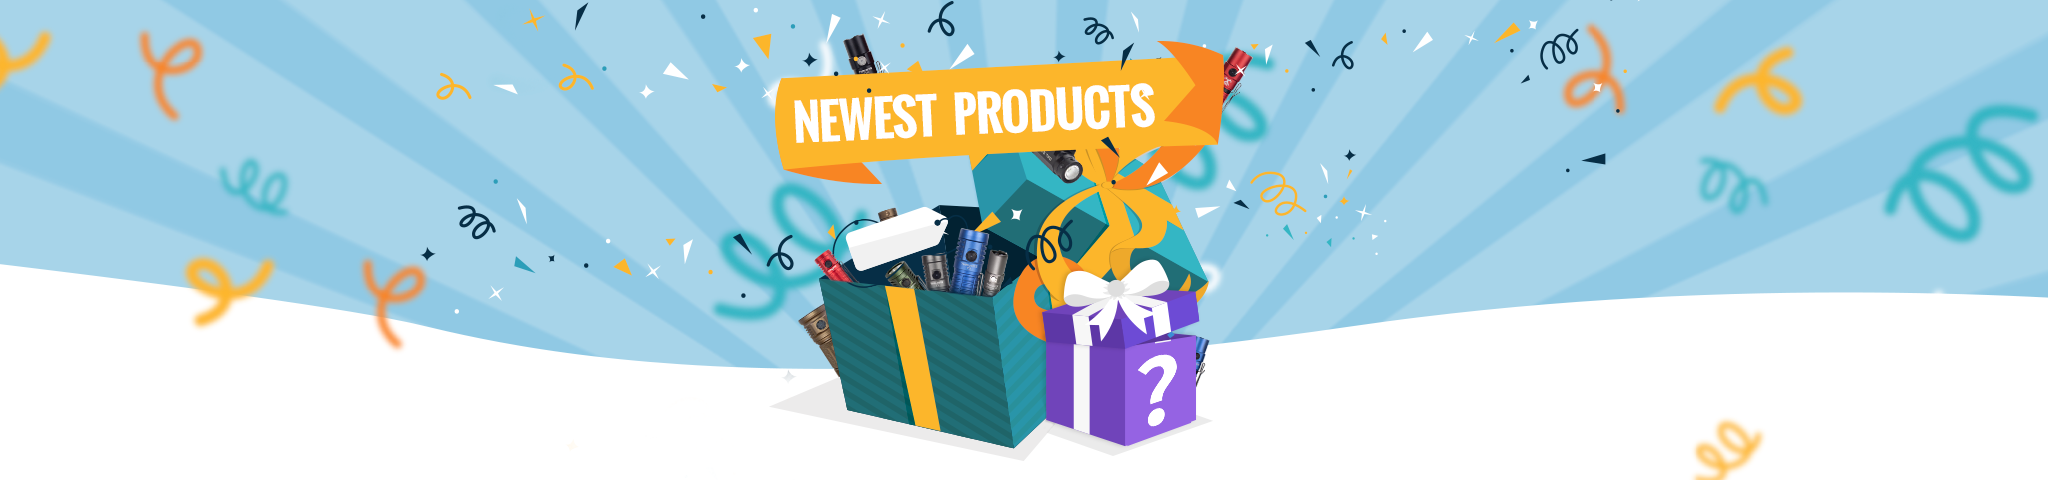 newest-products-sep.png